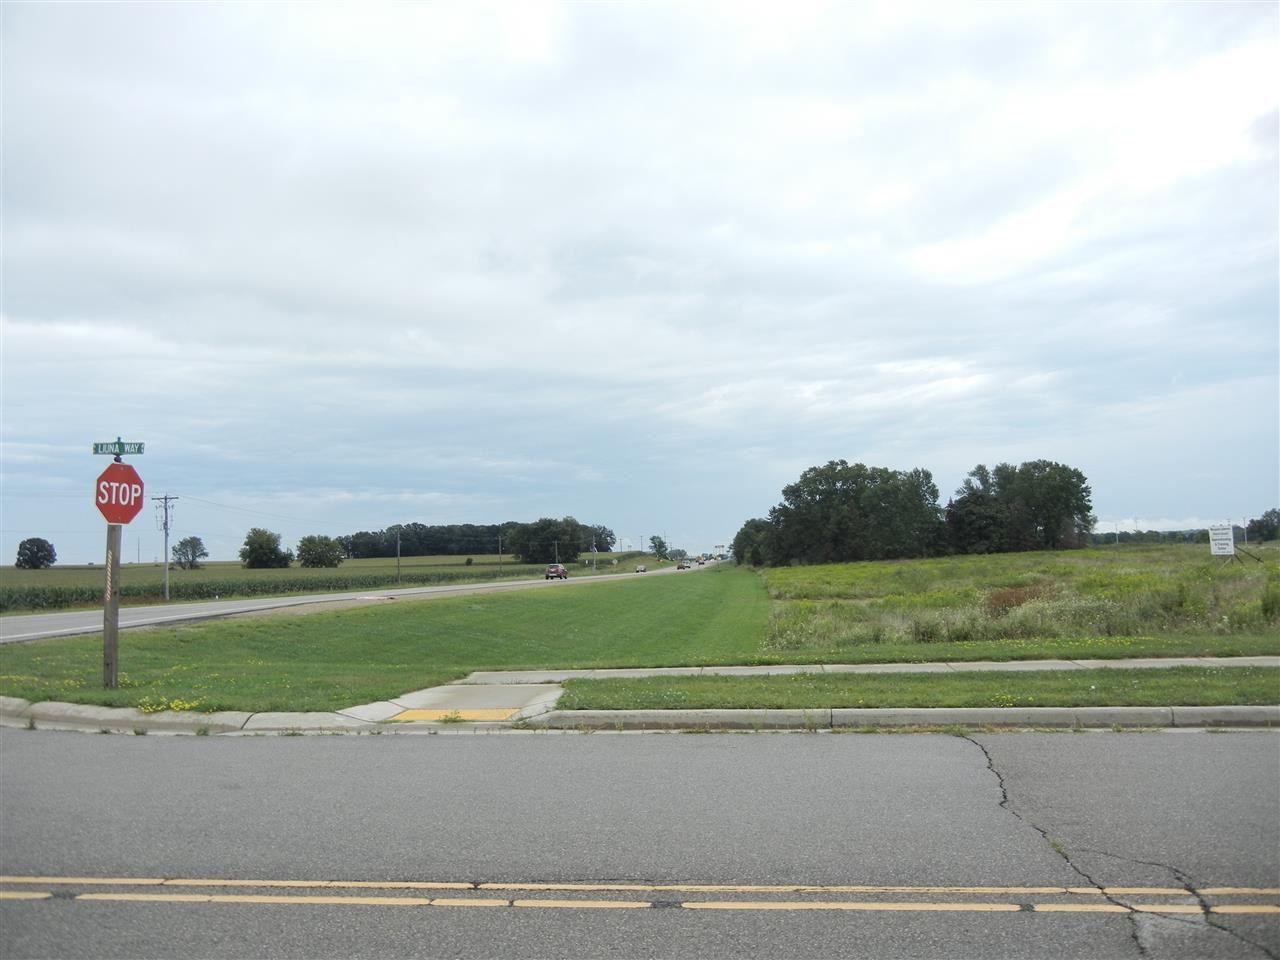 Lot 3 Liuna Way, Deforest WI 53532 - Photo 2